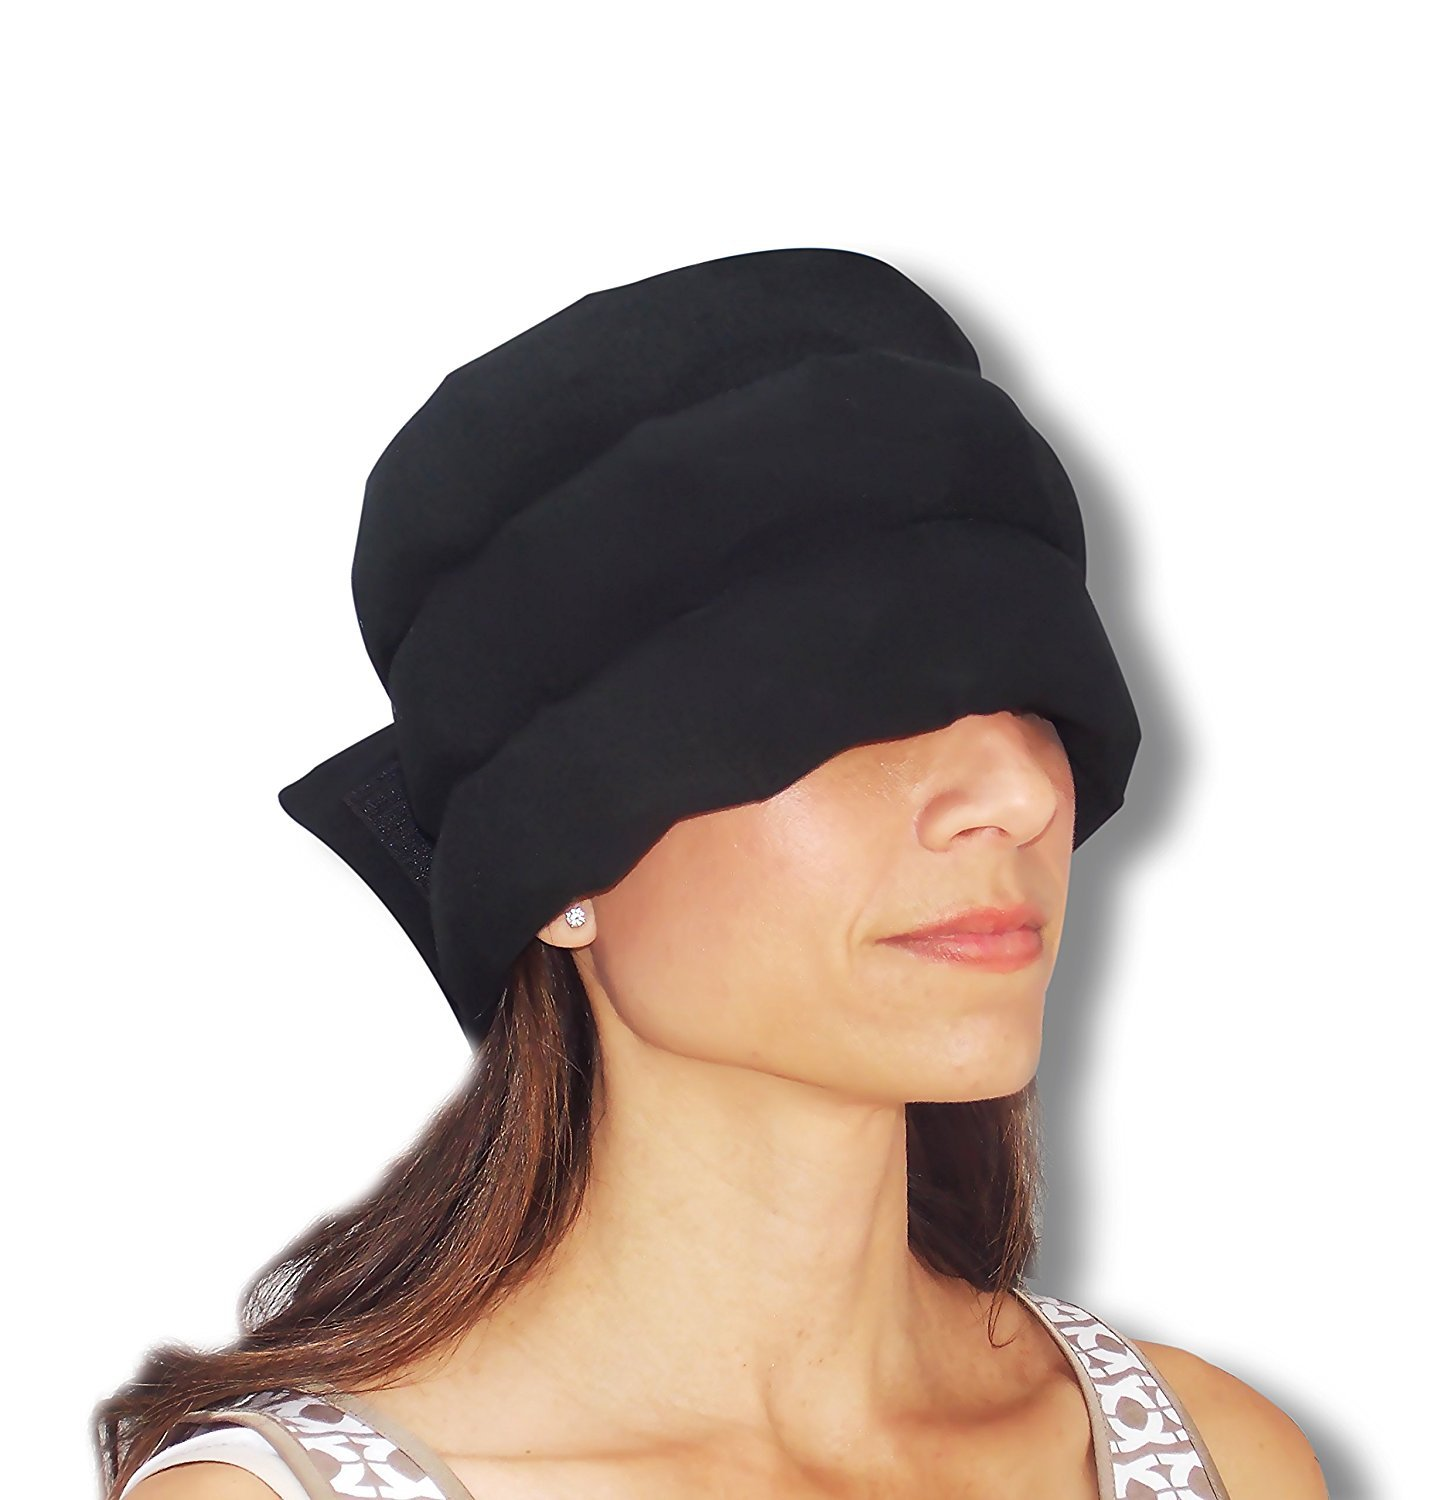 Headache Hat - The Original Wearable Ice Pack for Migraine Headaches and Tension Relief - Regular Size